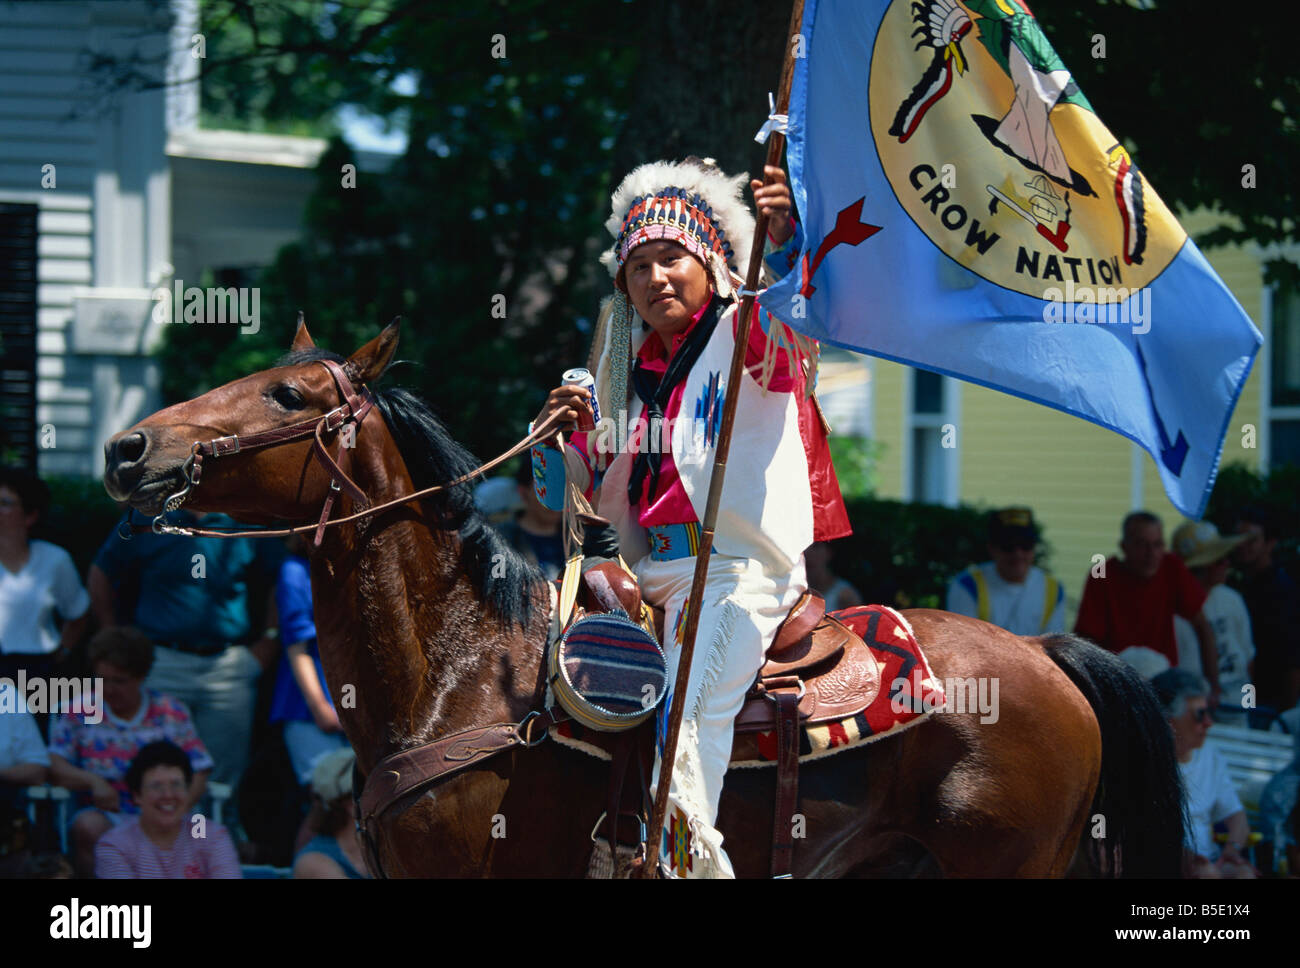 Crow Nation Indian at Bristol's famous 4th of July parade, Bristol, Rhode Island, USA, North America - Stock Image